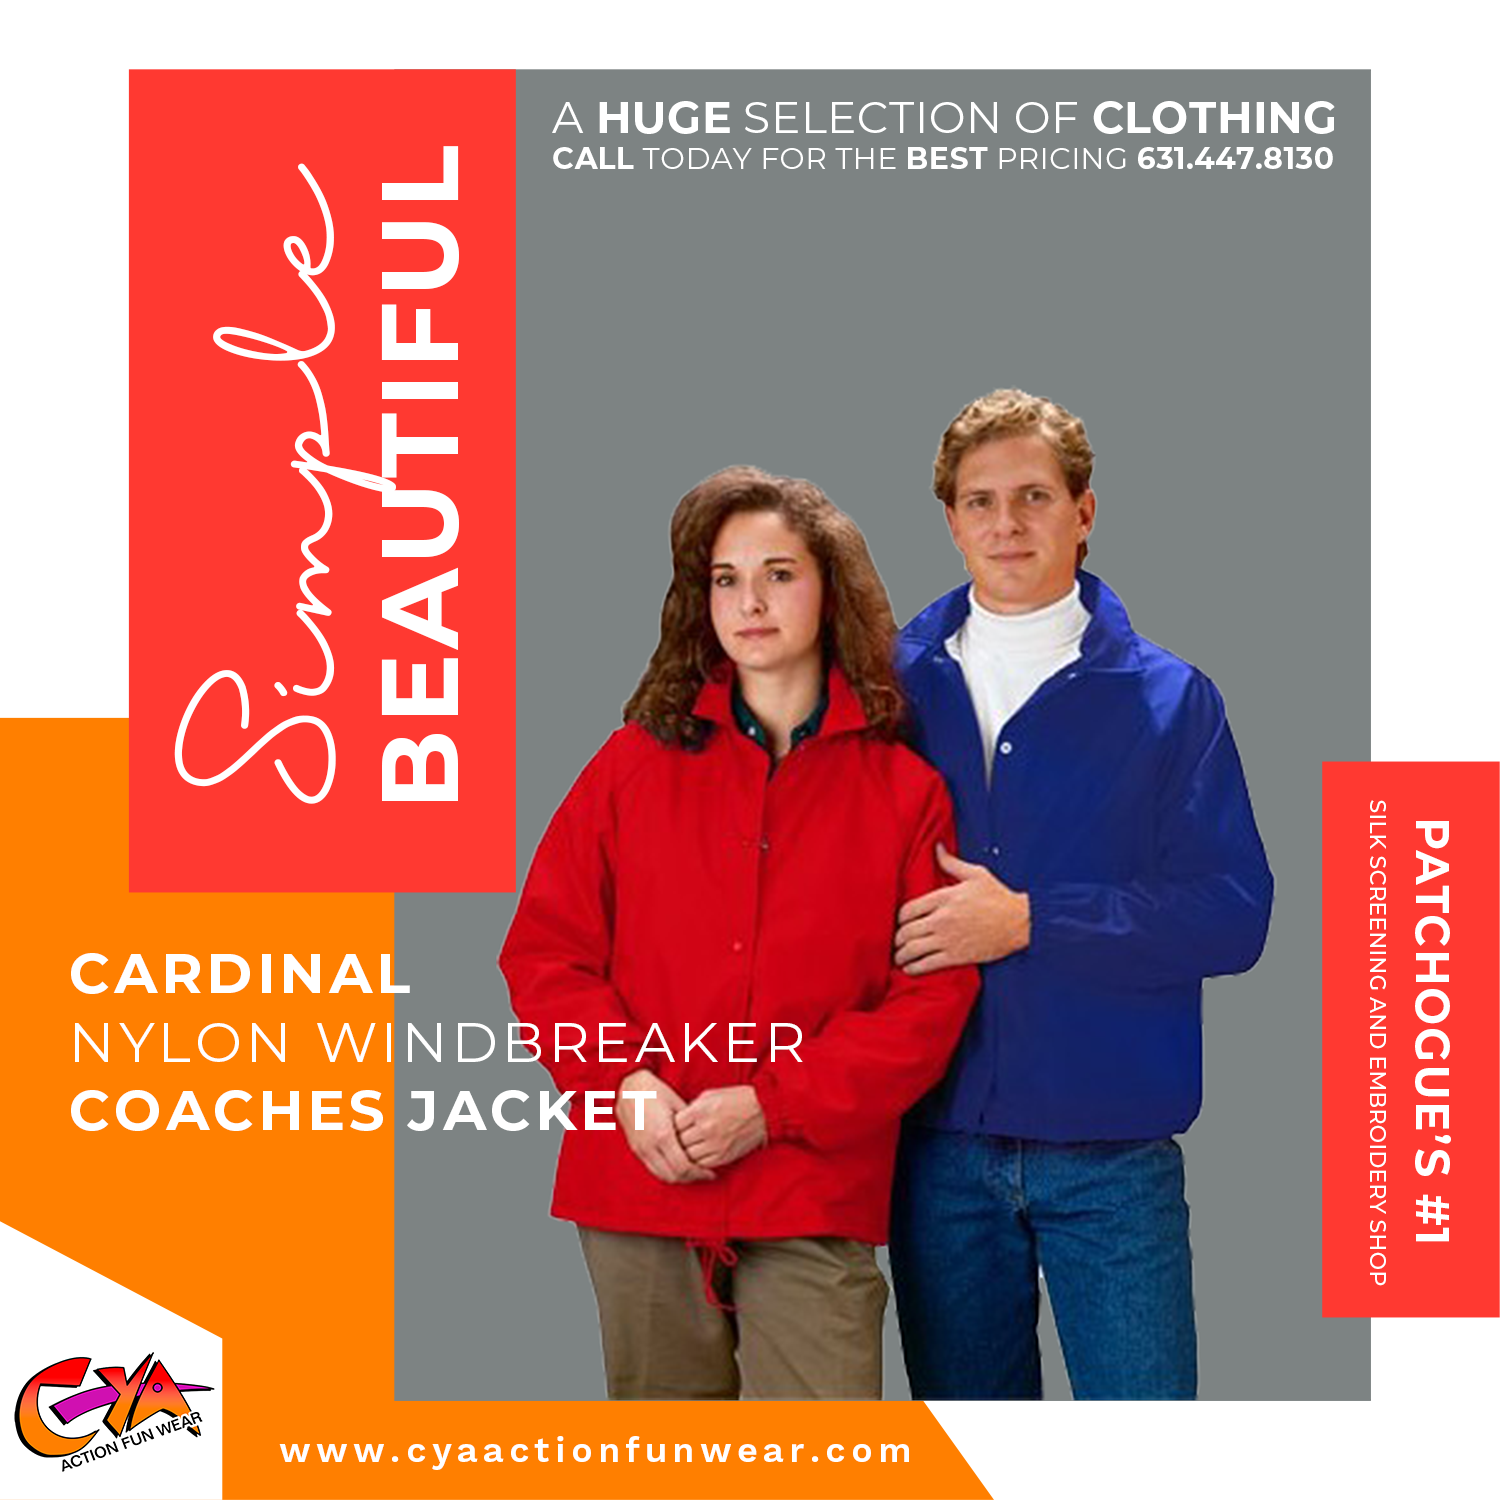 Best Windbreaker Prices Patchogue New York